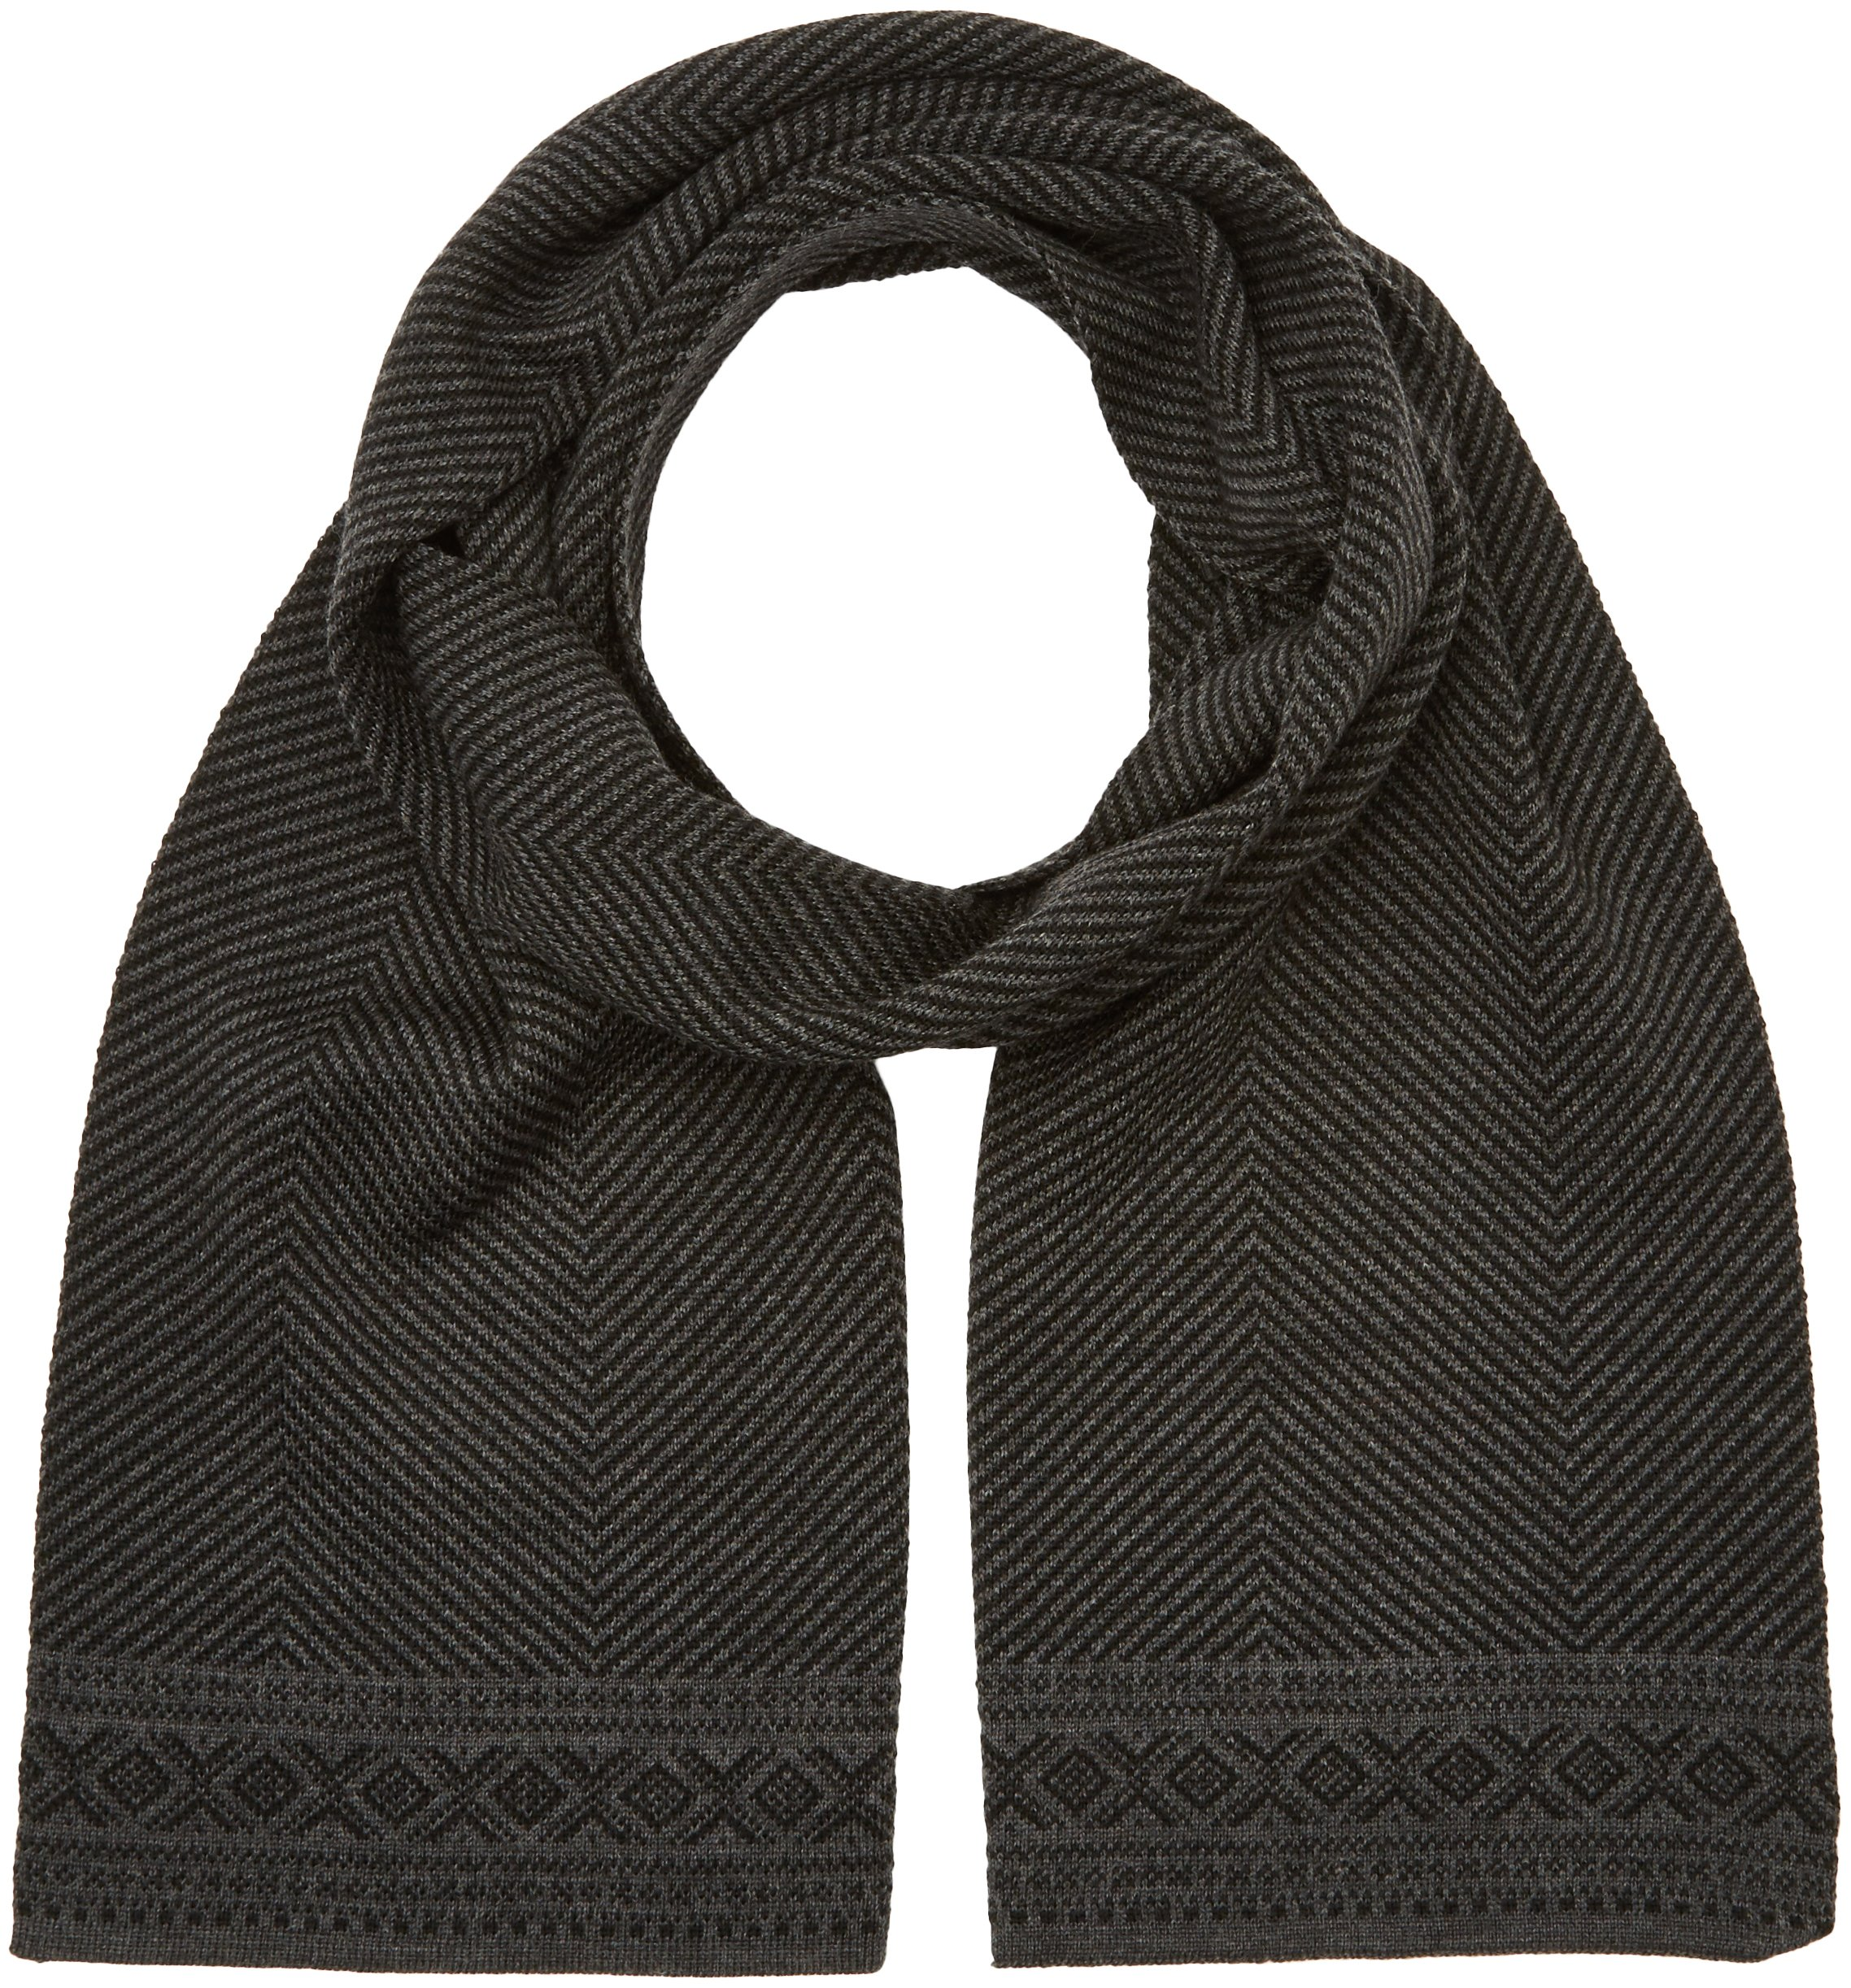 Dale of Norway Unisex Harald Scarf Black One Size